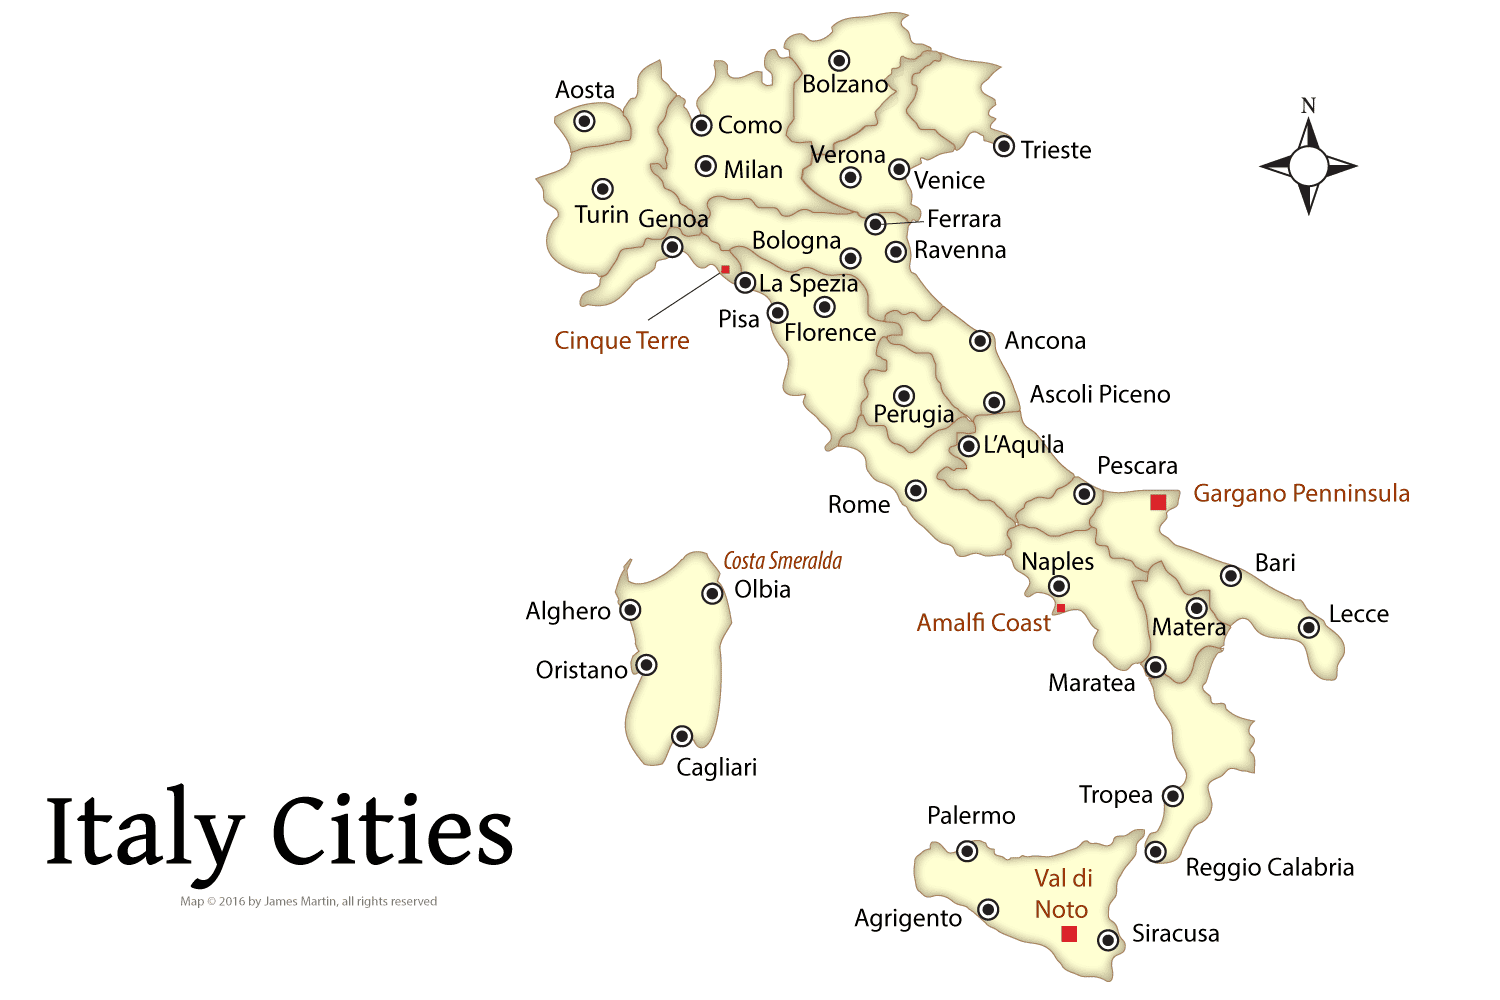 Planning Your Italian Vacation Best Cities In Italy - Cities map of italy